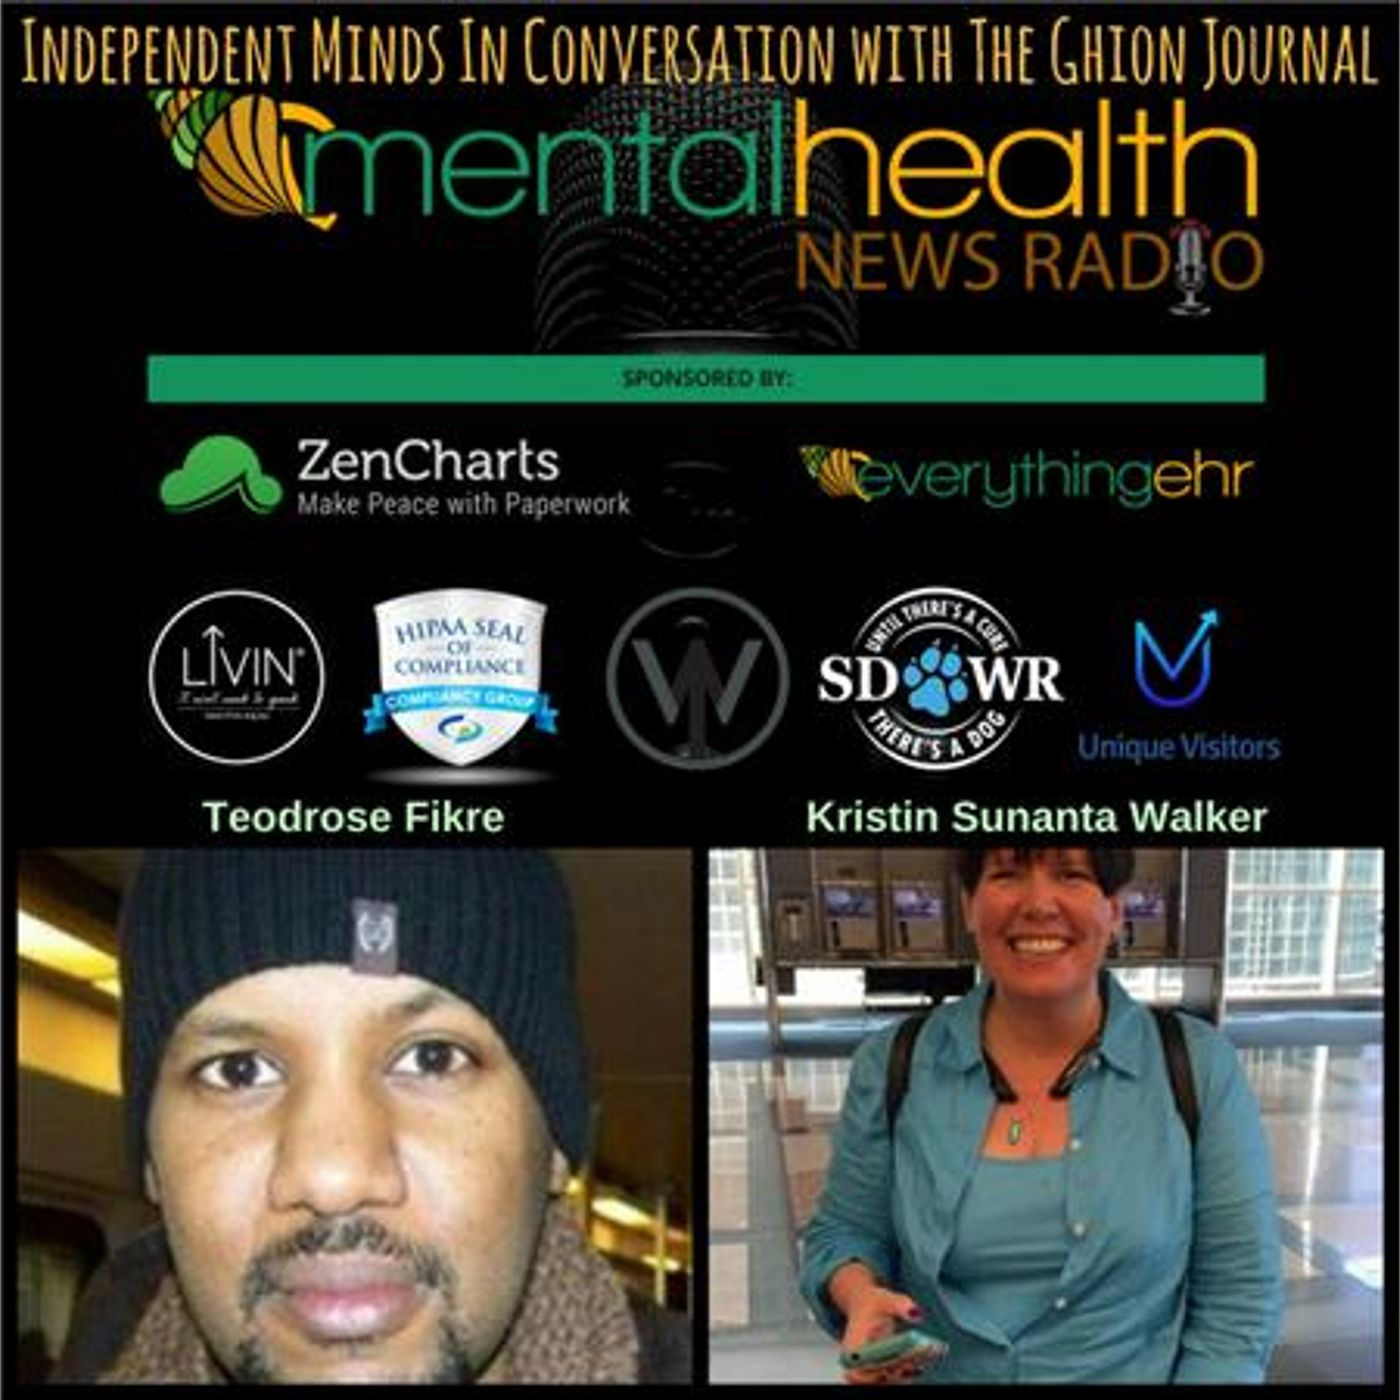 Mental Health News Radio - Independent Minds In Conversation with Teodrose Fikre of The Ghion Journal